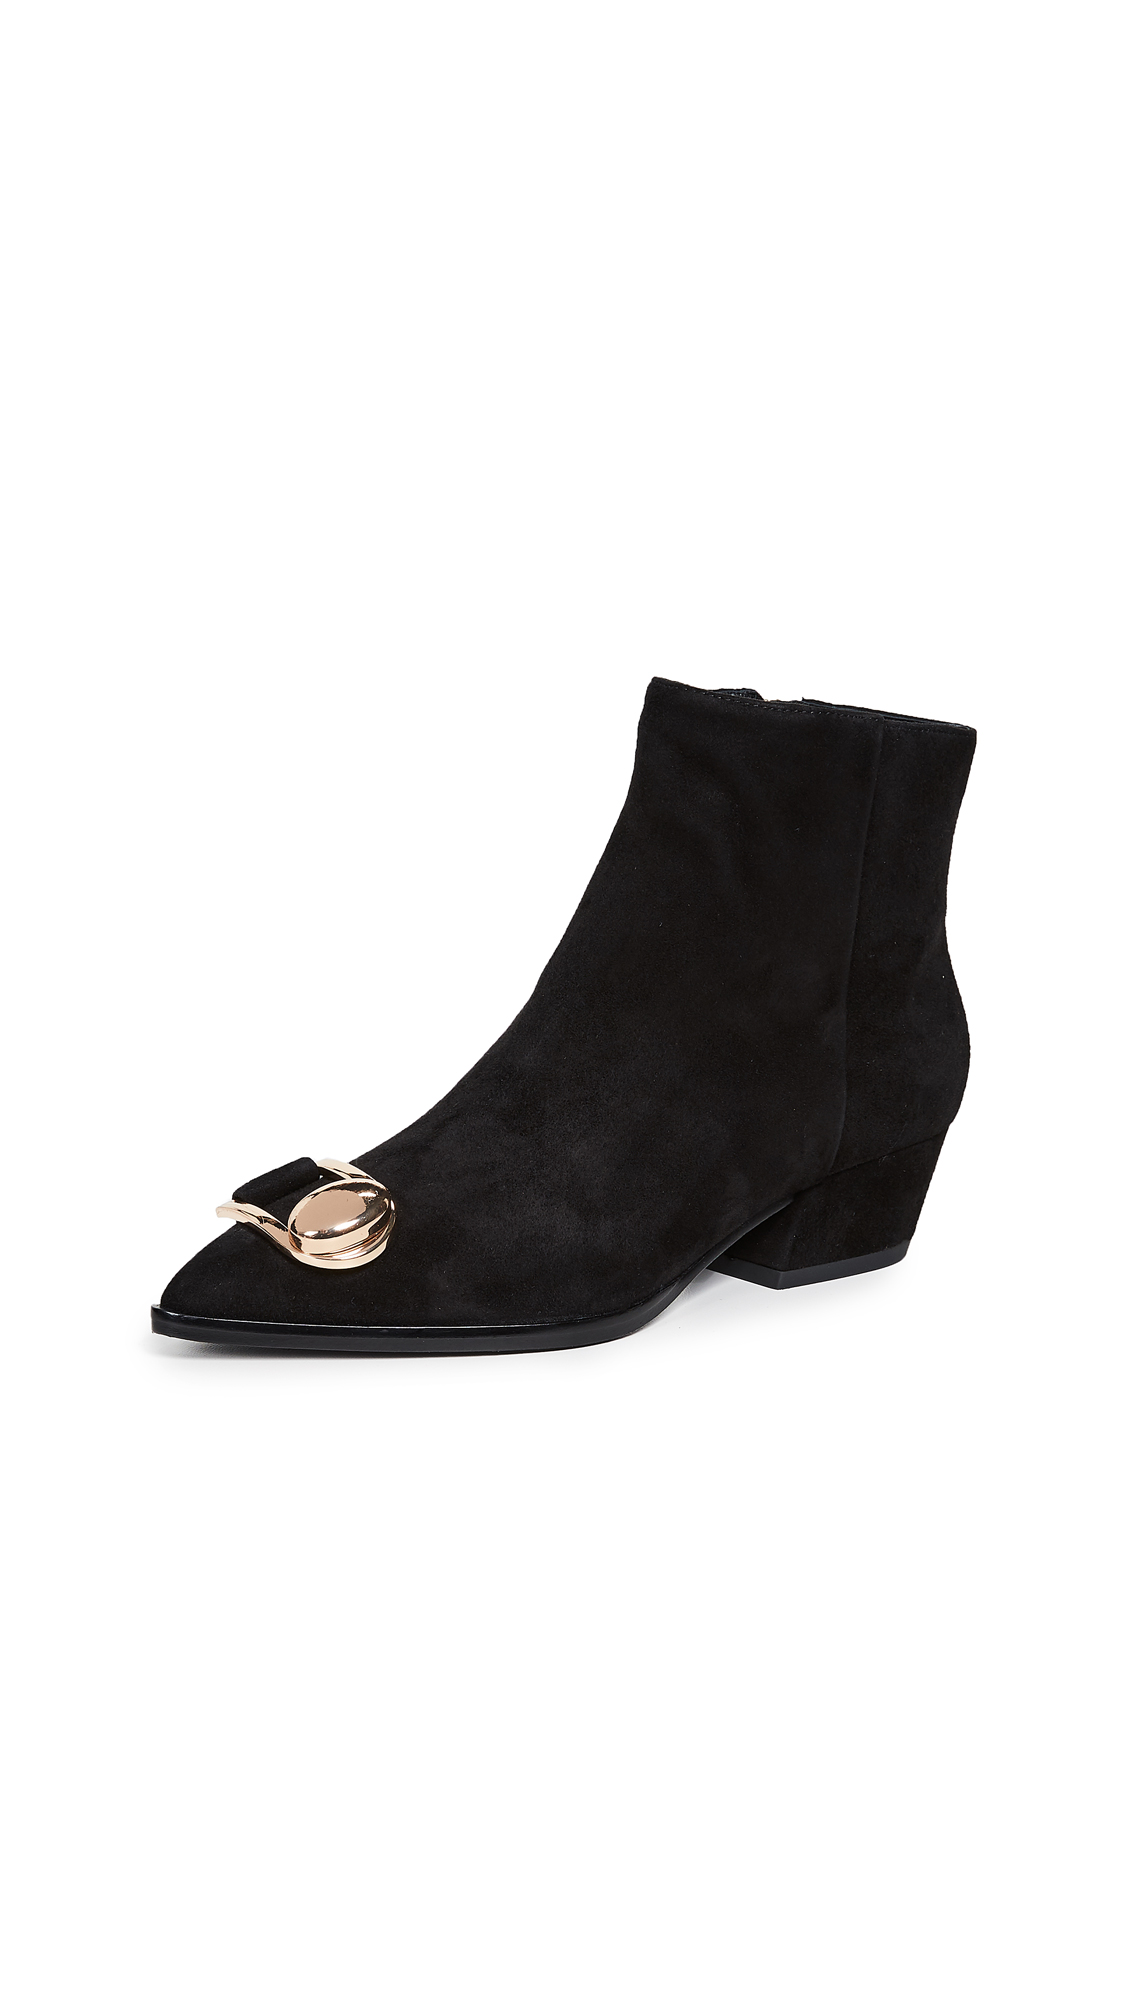 Photo of Stella Luna Stella Buckle Ankle Boots - buy Stella Luna shoes